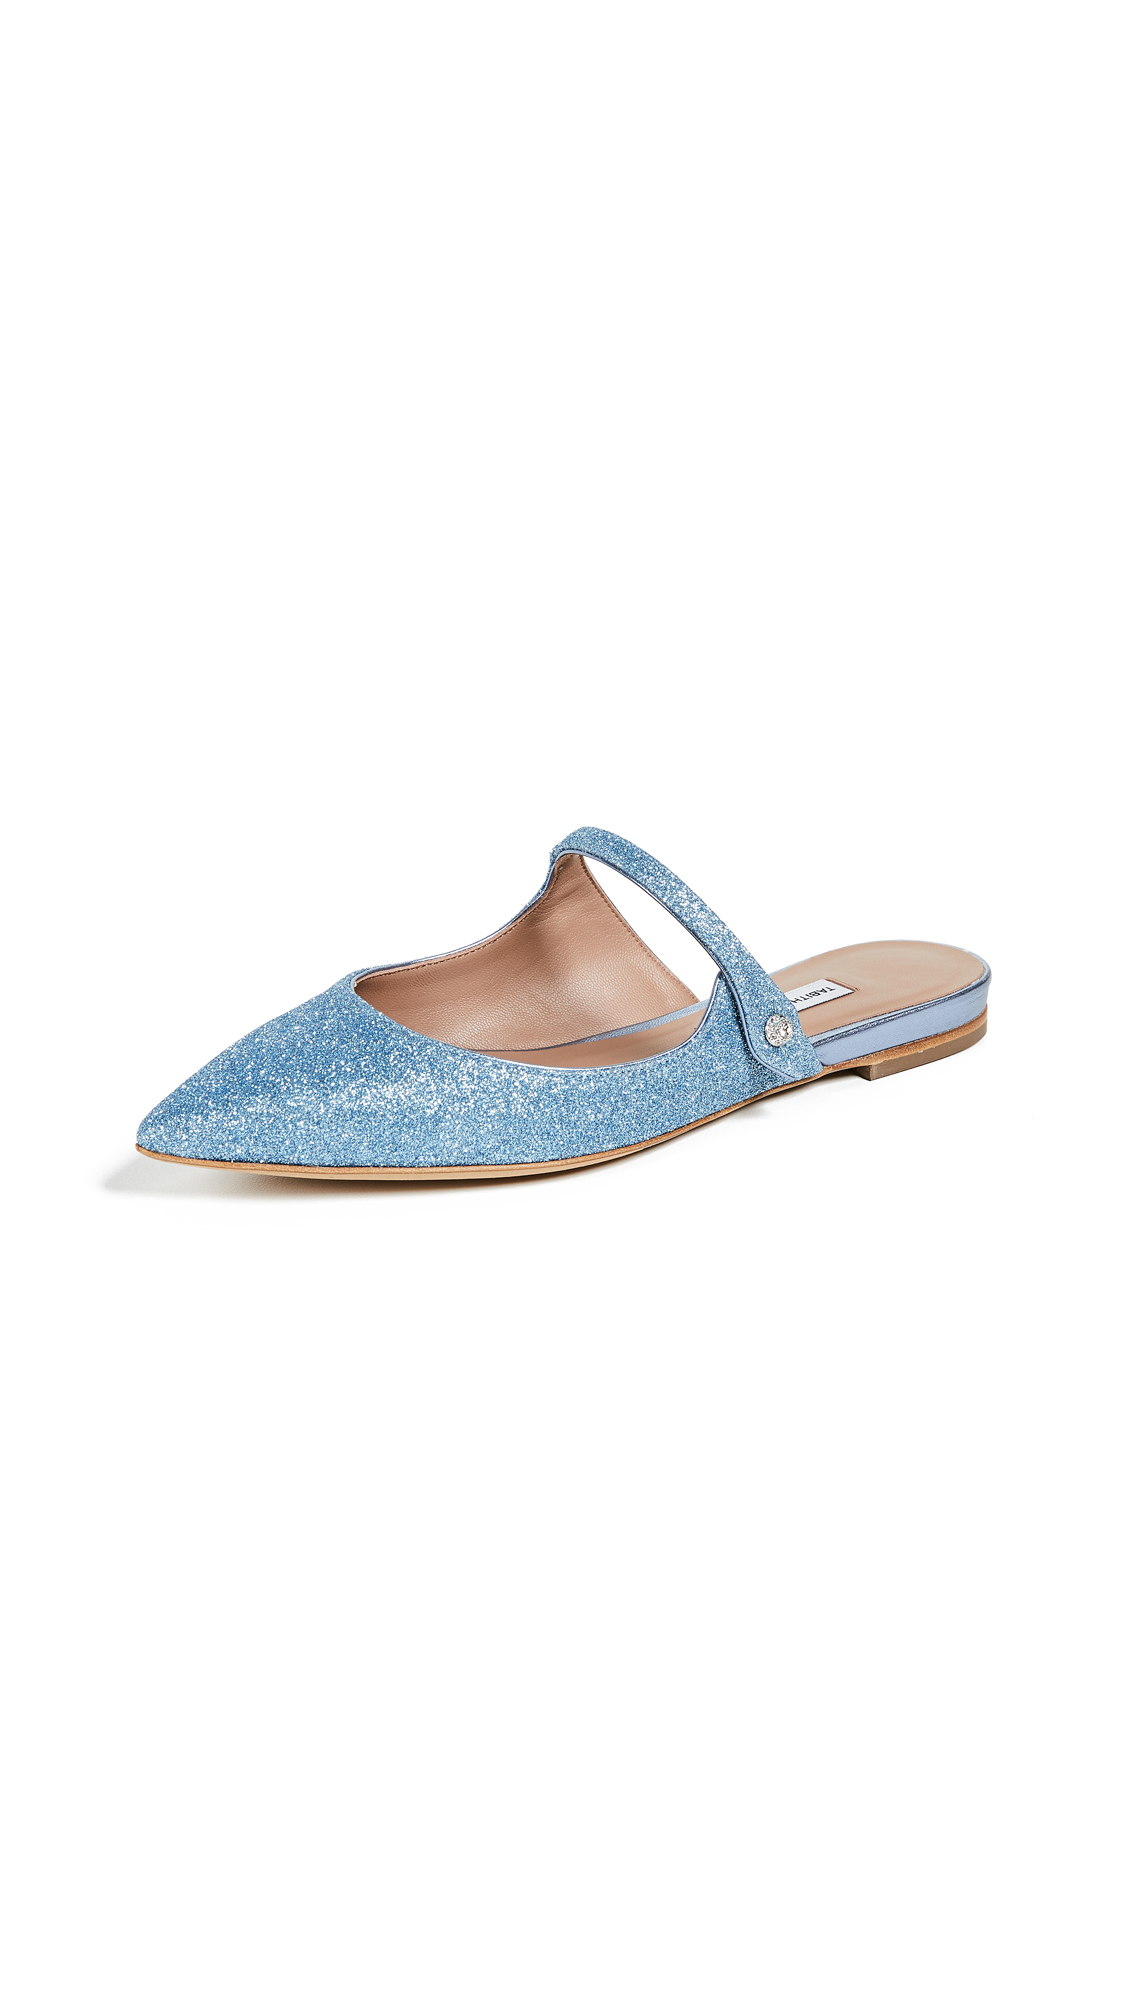 Tabitha Simmons Kittie Ballet Mule Flats - Light Blue